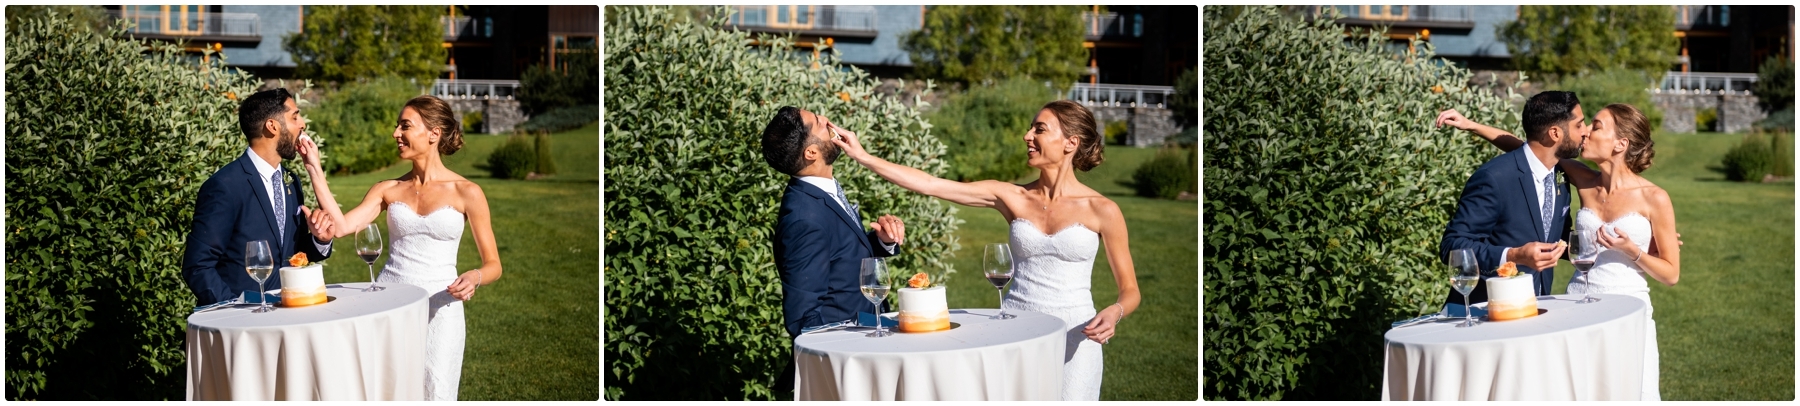 Calgary Azuridge Estate Hotel Wedding -Outdoor Reception Photographer